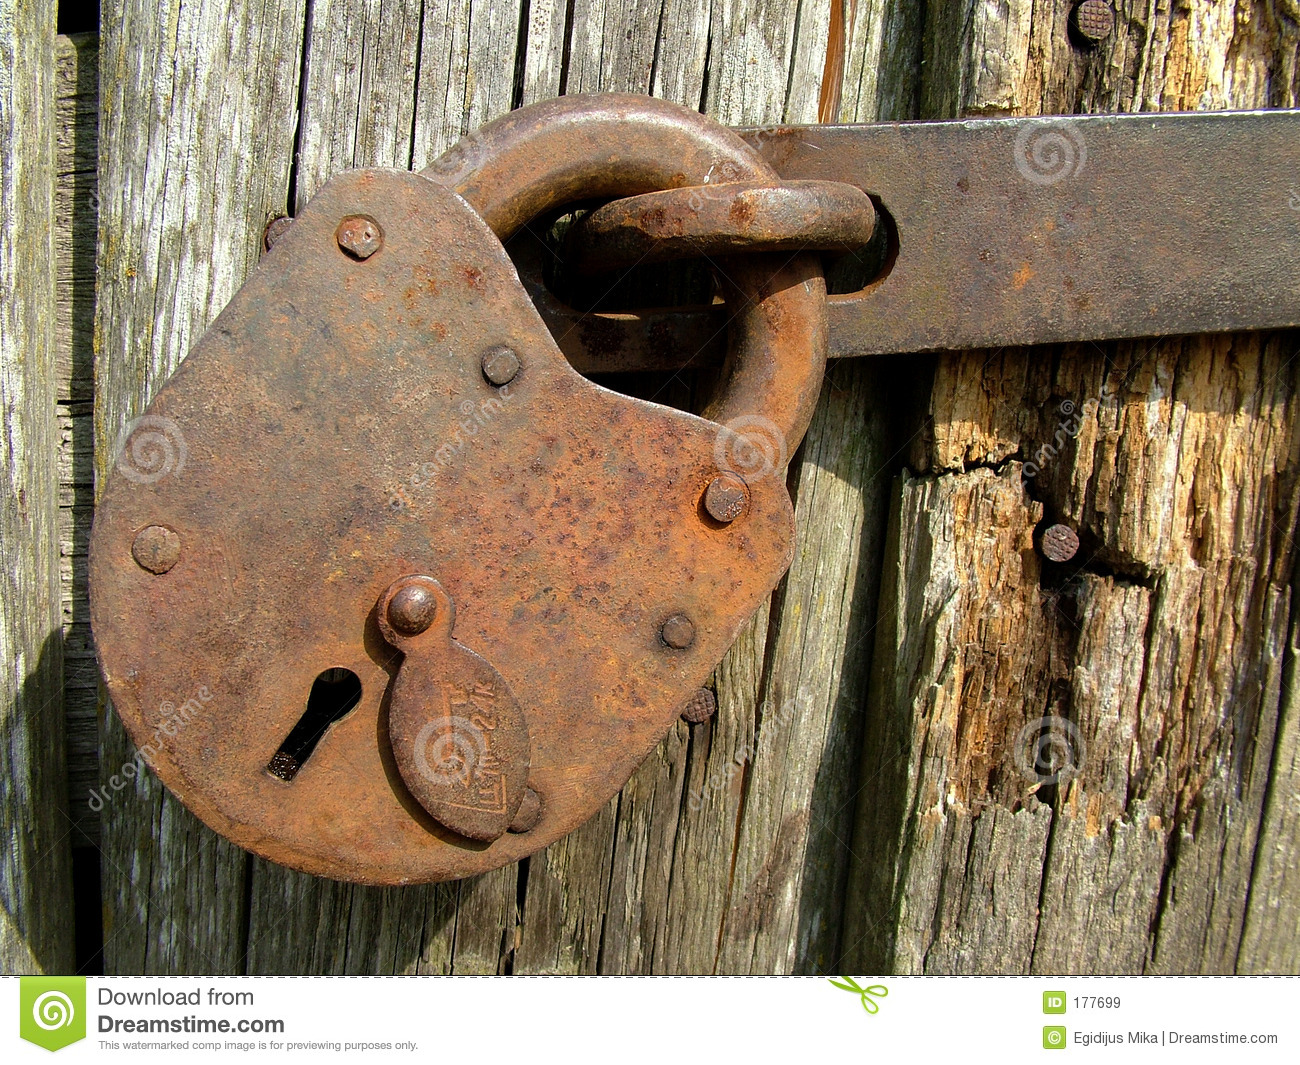 Antique Door Locks vintage lock royalty free stock images - image: 177699